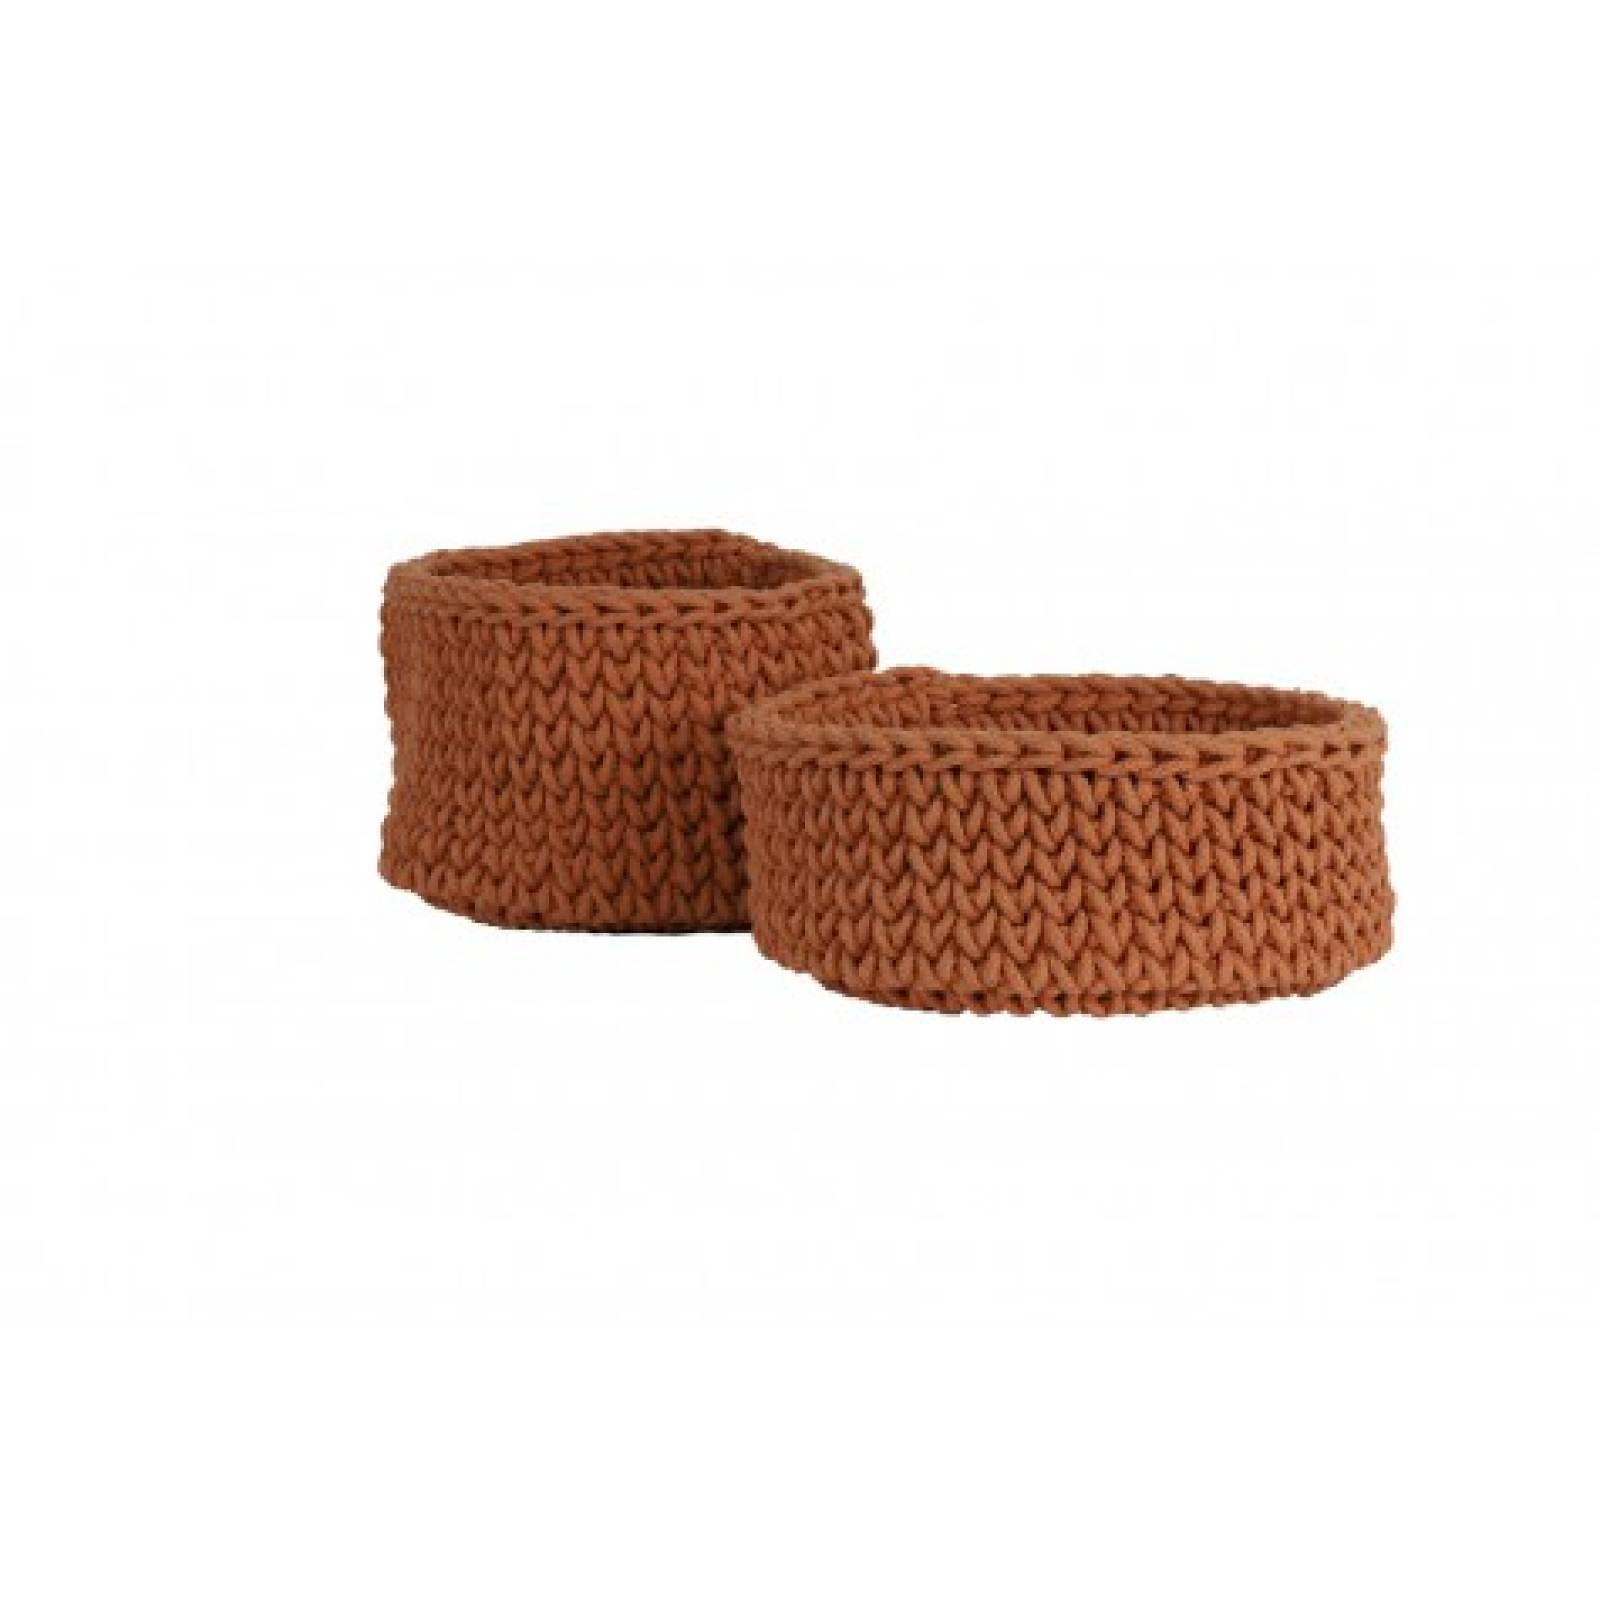 Abari Terra Baskets x Set of 2 (diff sizes together)